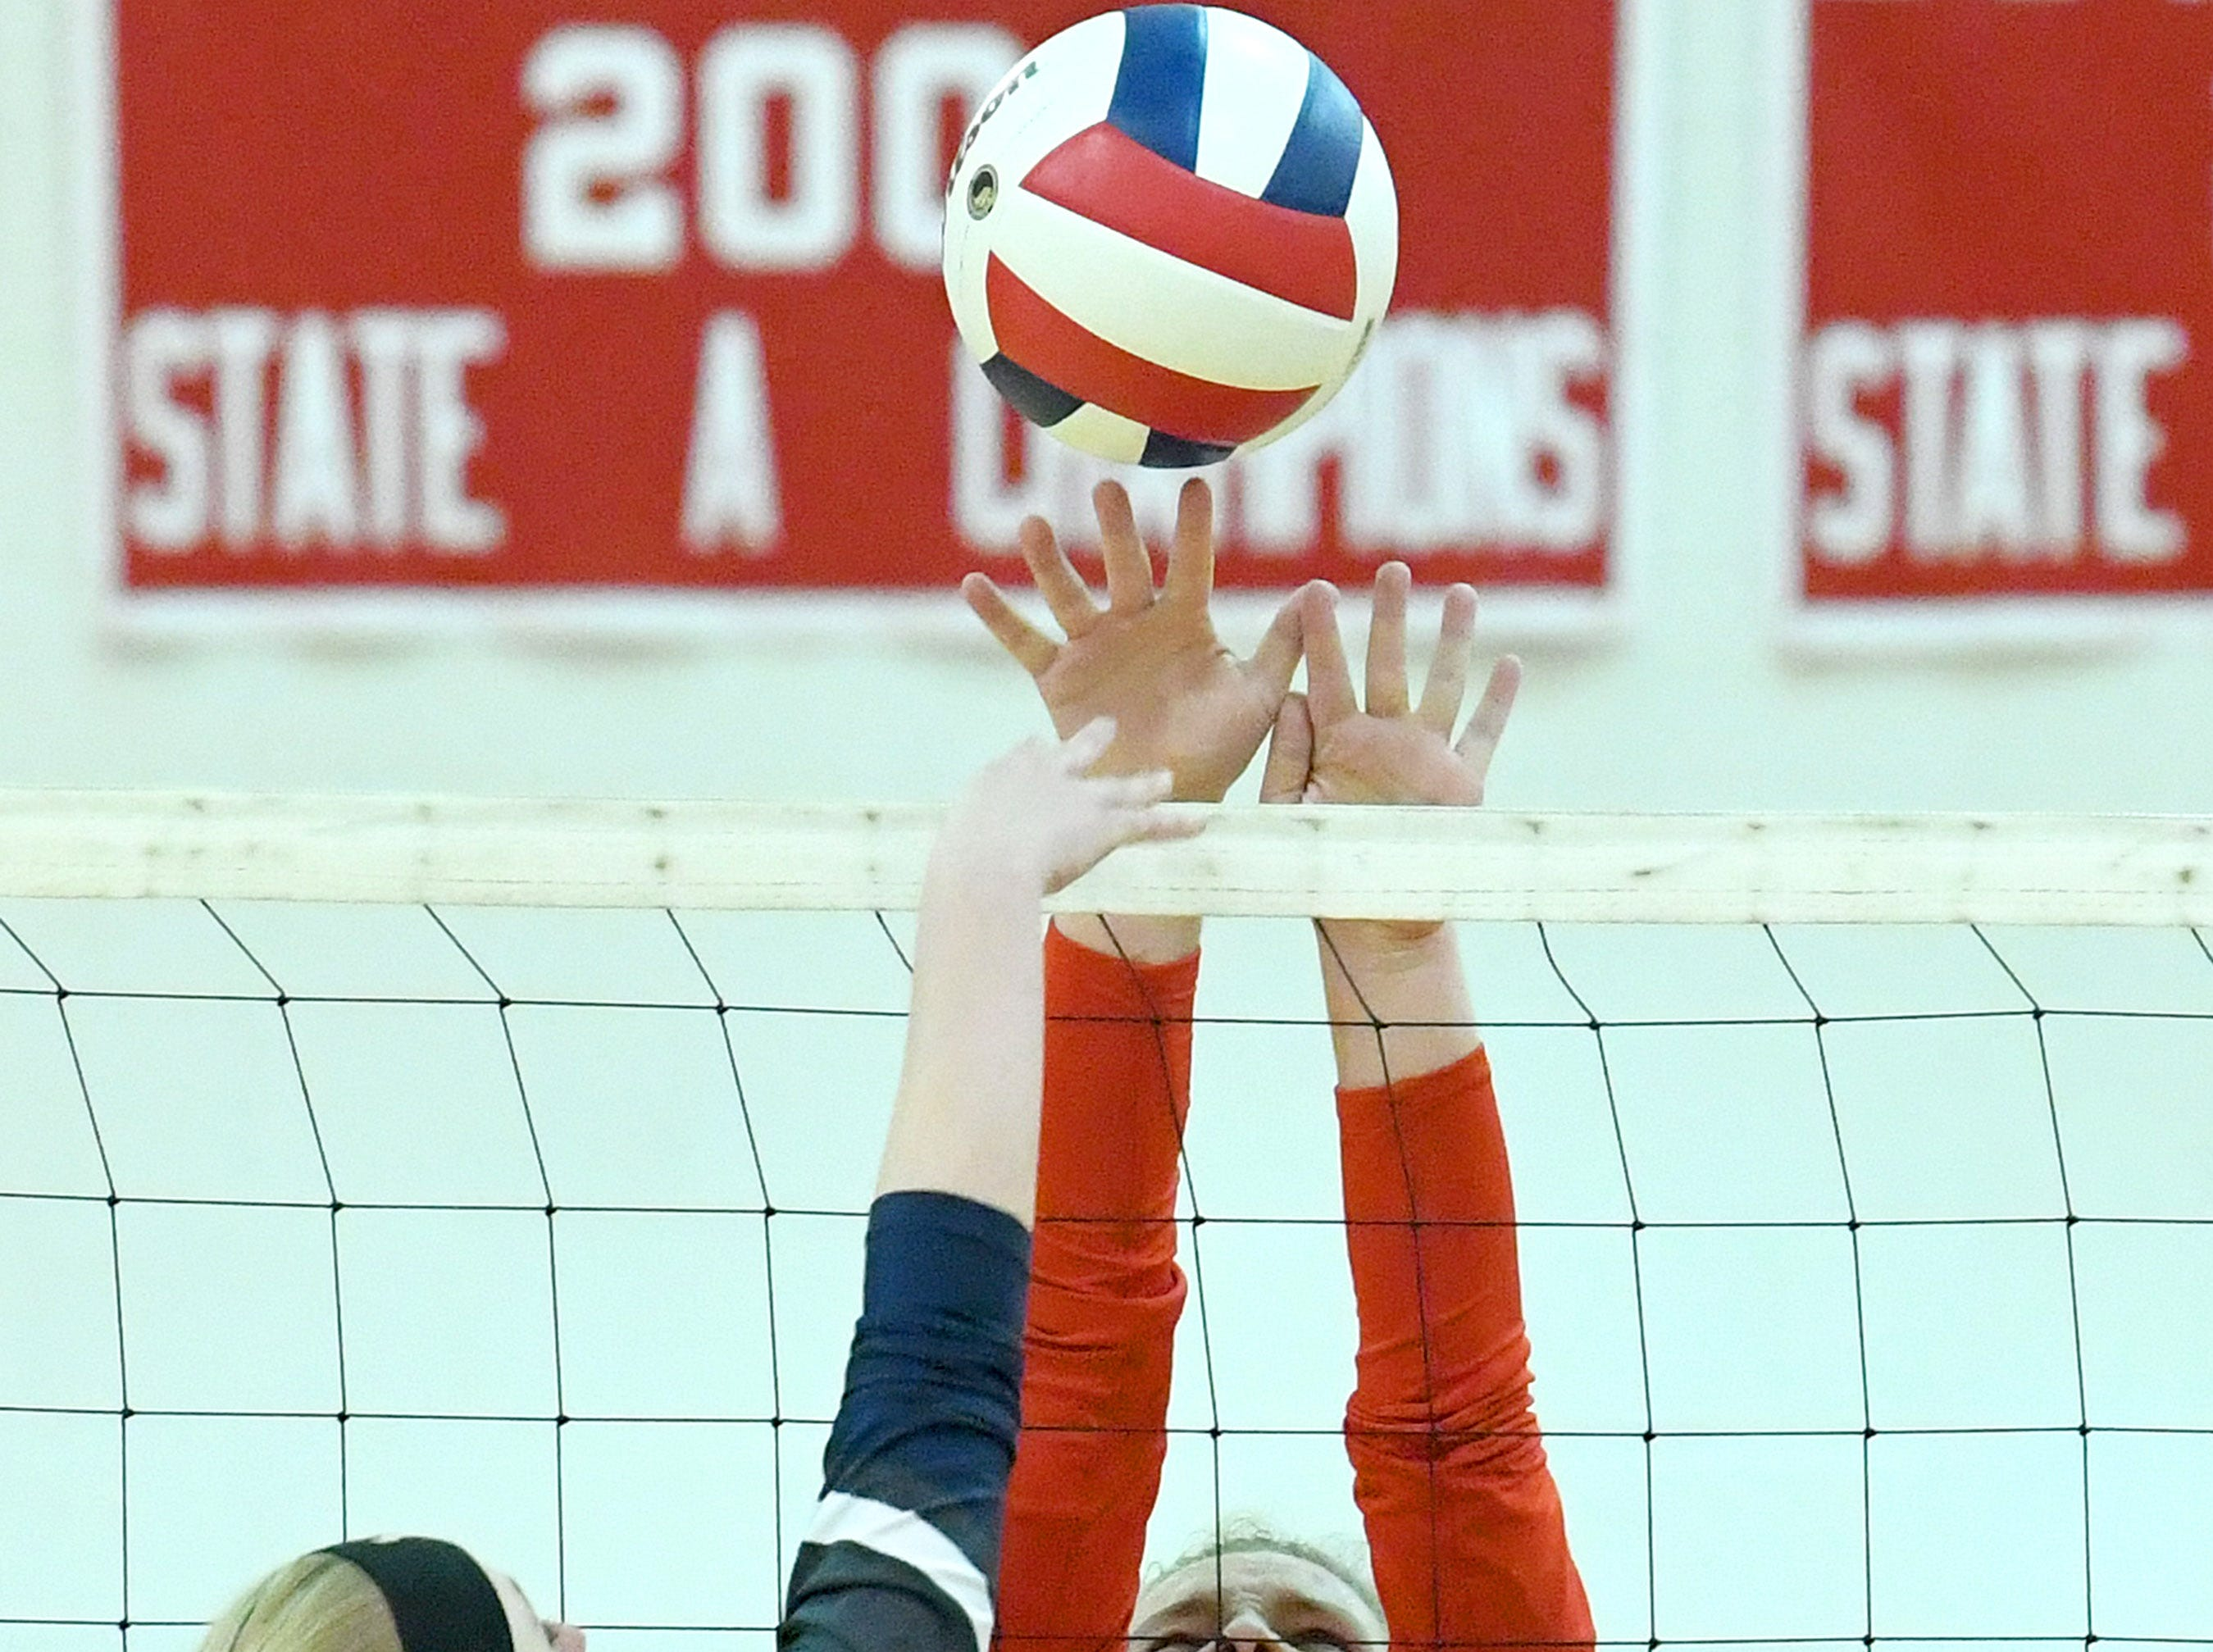 Riverheads' Dayton Moore blocks a return by William Campbell's Callie McFaden at the net during a Region 1B quarterfinal match, played in Greenville on Thursday, Nov. 1, 2018.